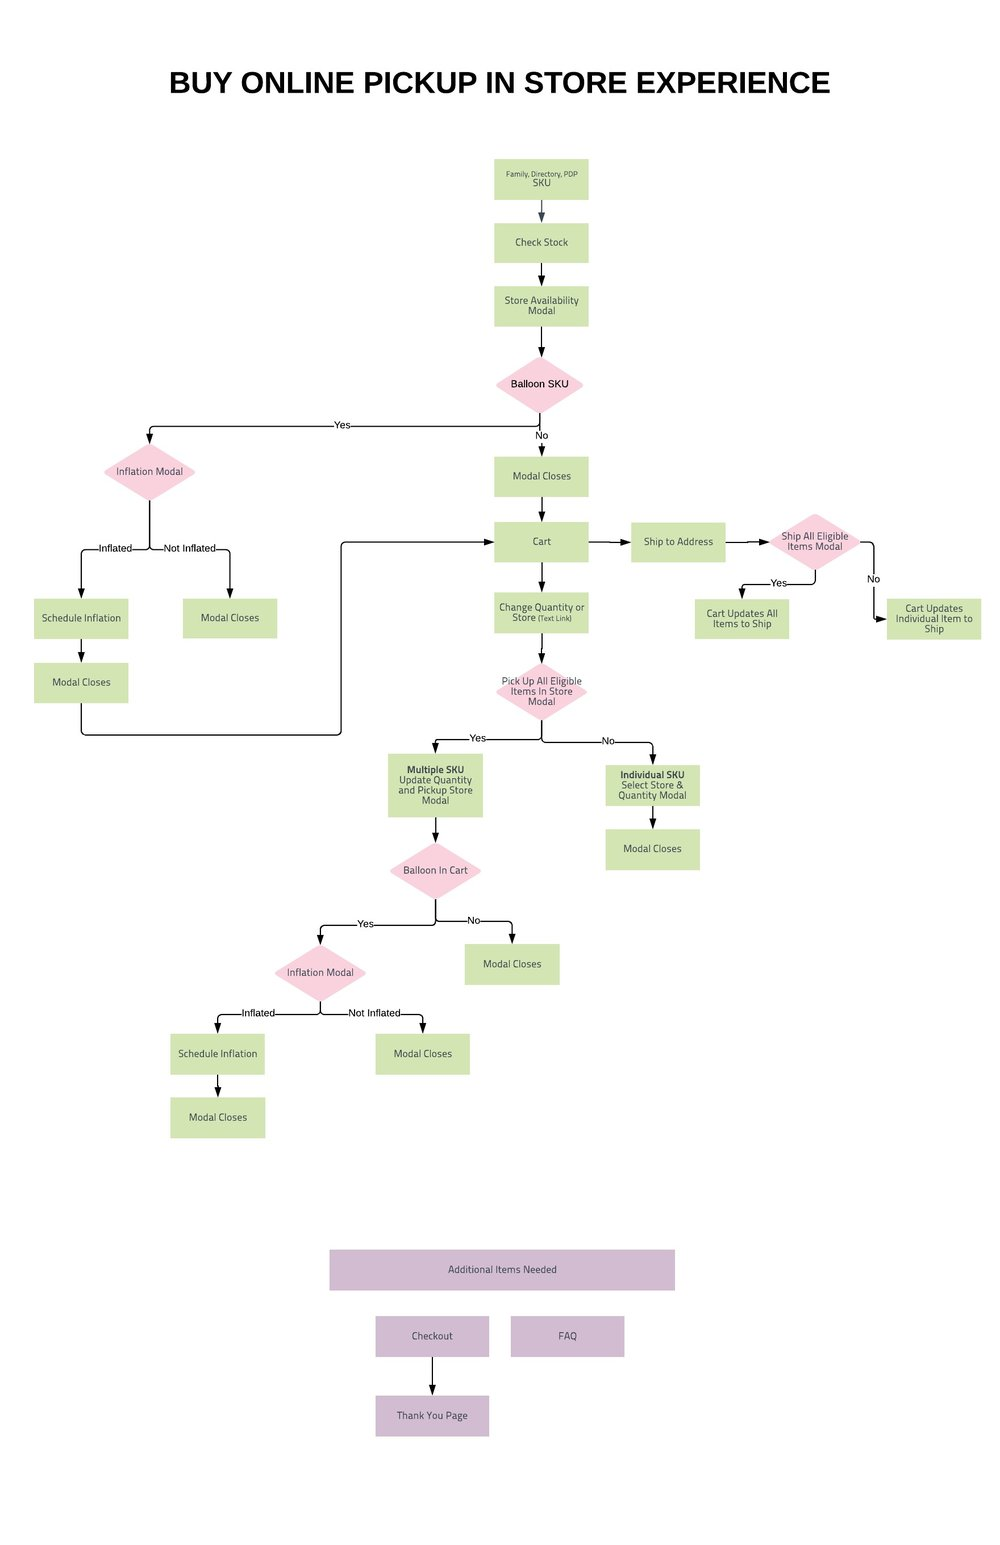 BOPIS Flowchart - New Page.jpeg